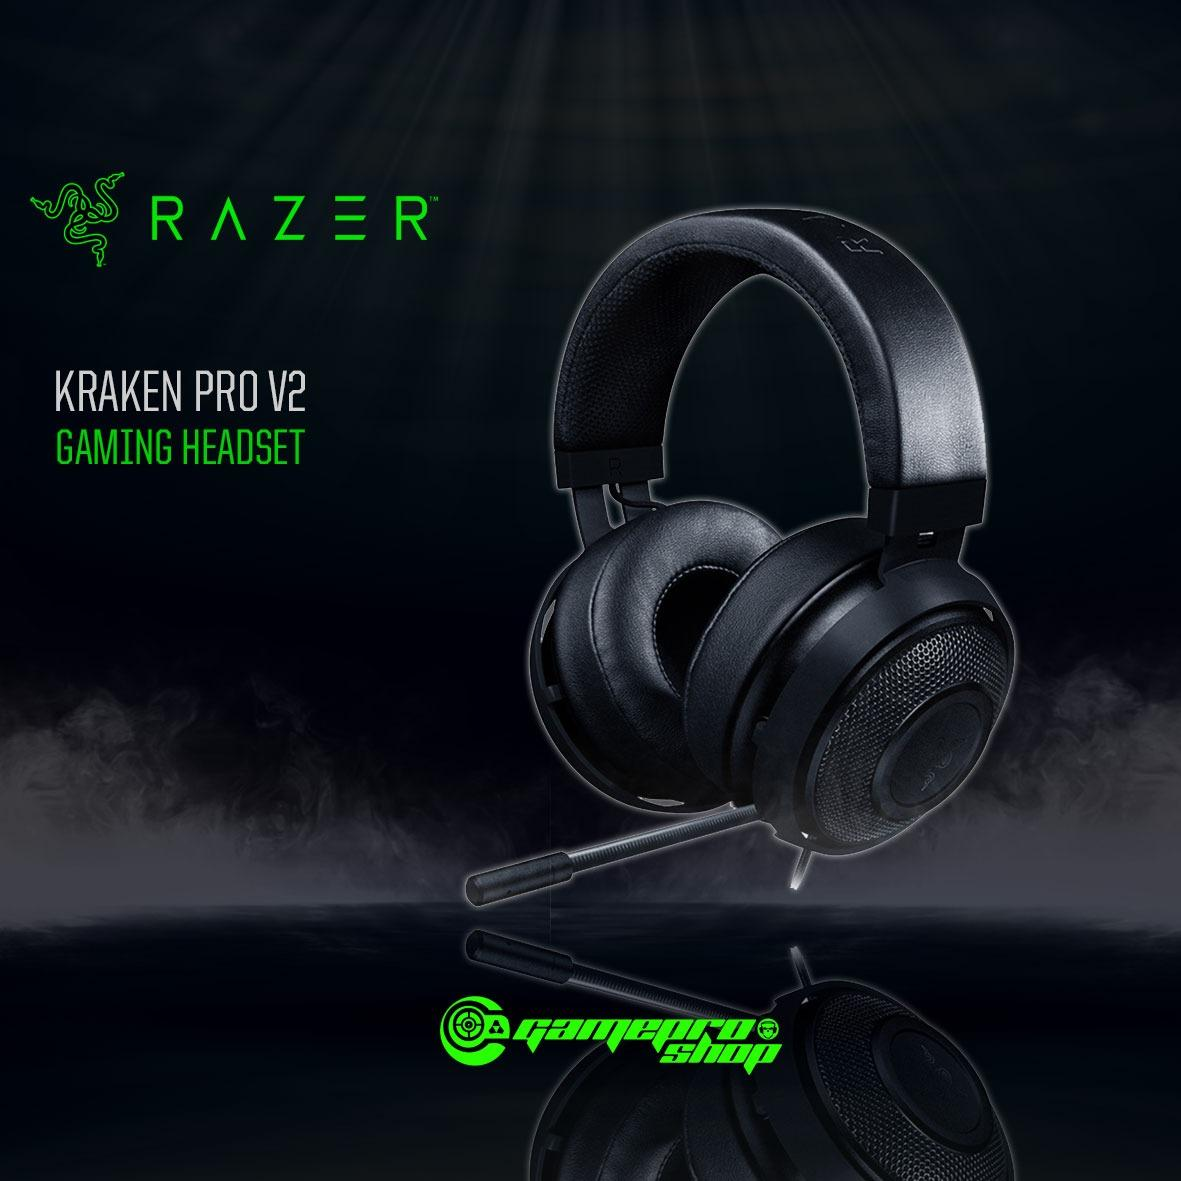 Razer Kraken Pro V2 Gaming Headset Black In Stock